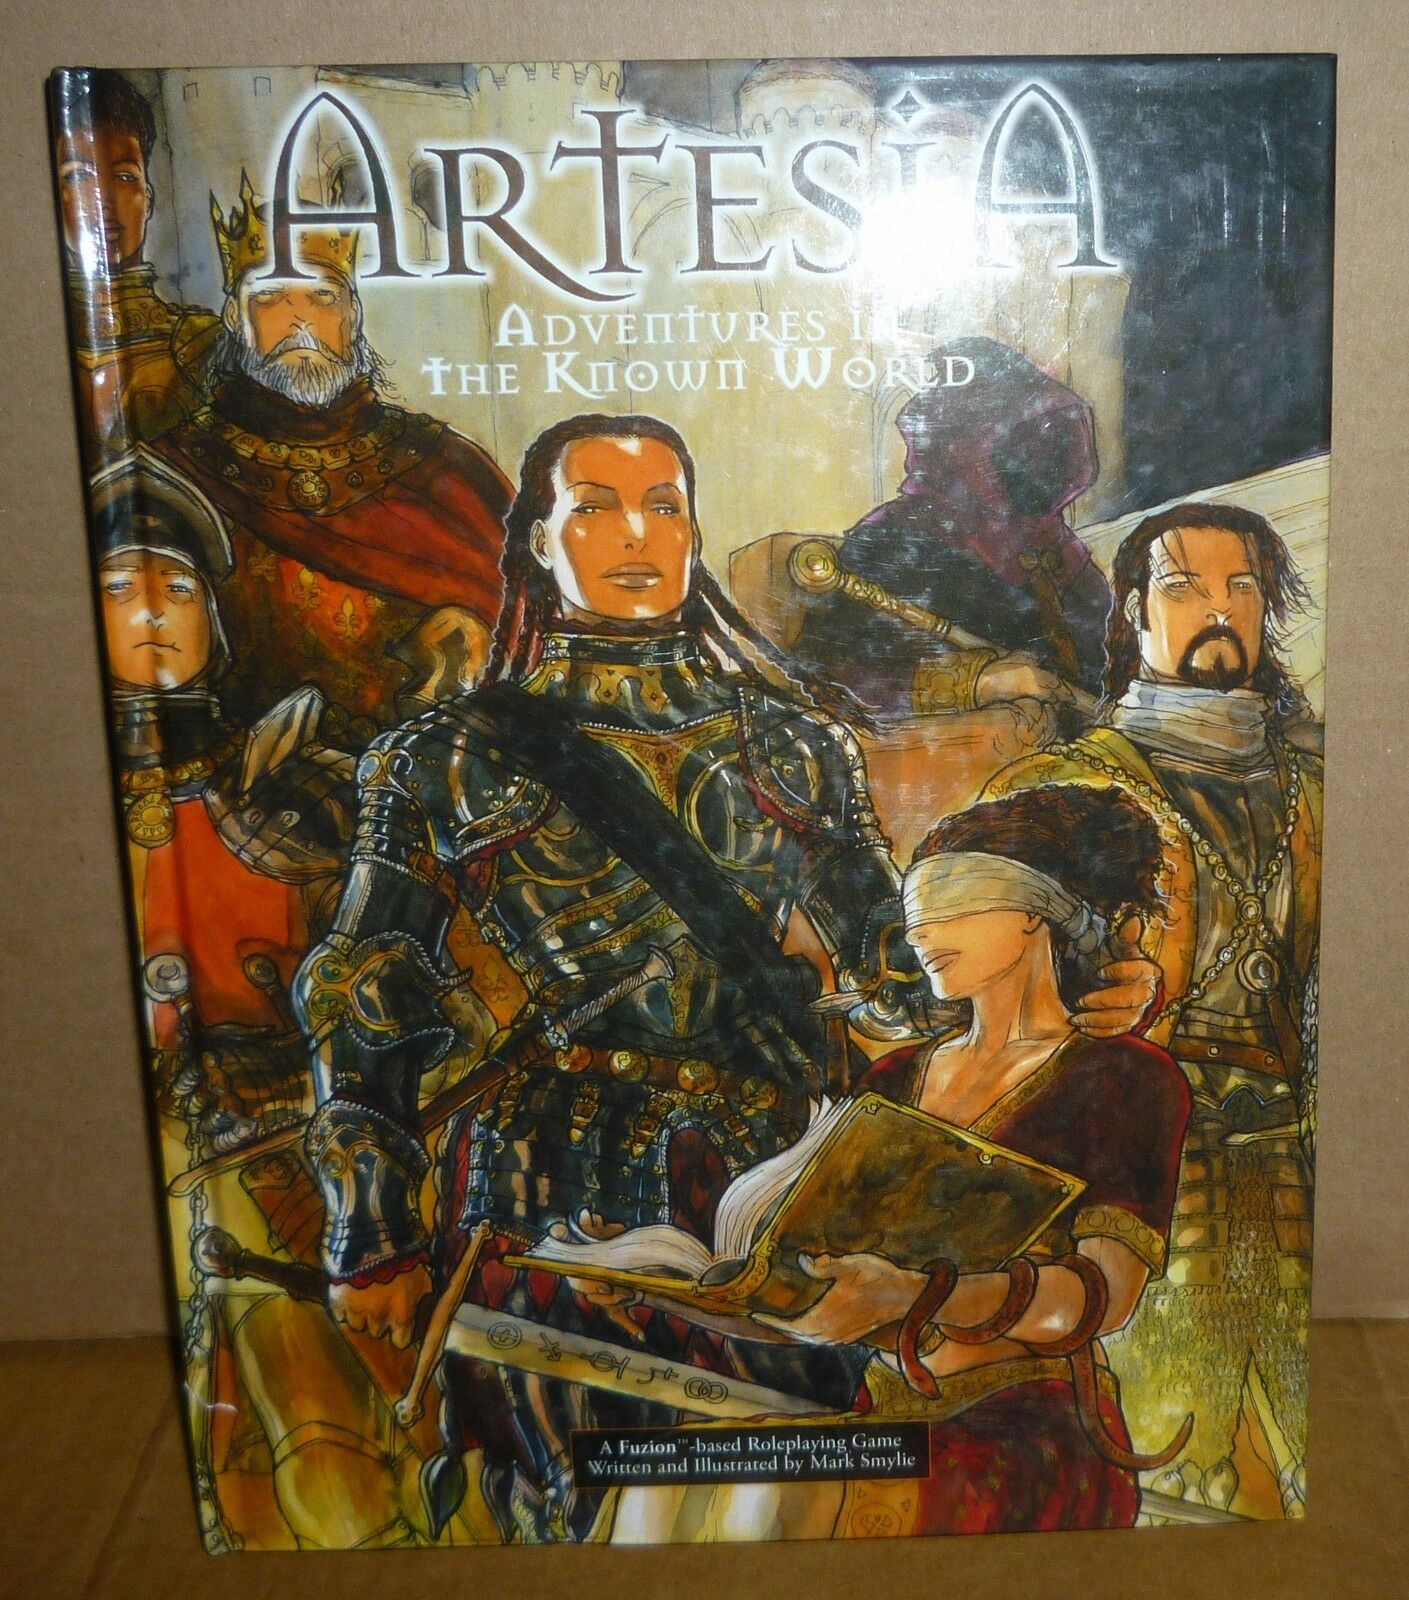 ARTESIA Adventures in the Known World RPG Book Used